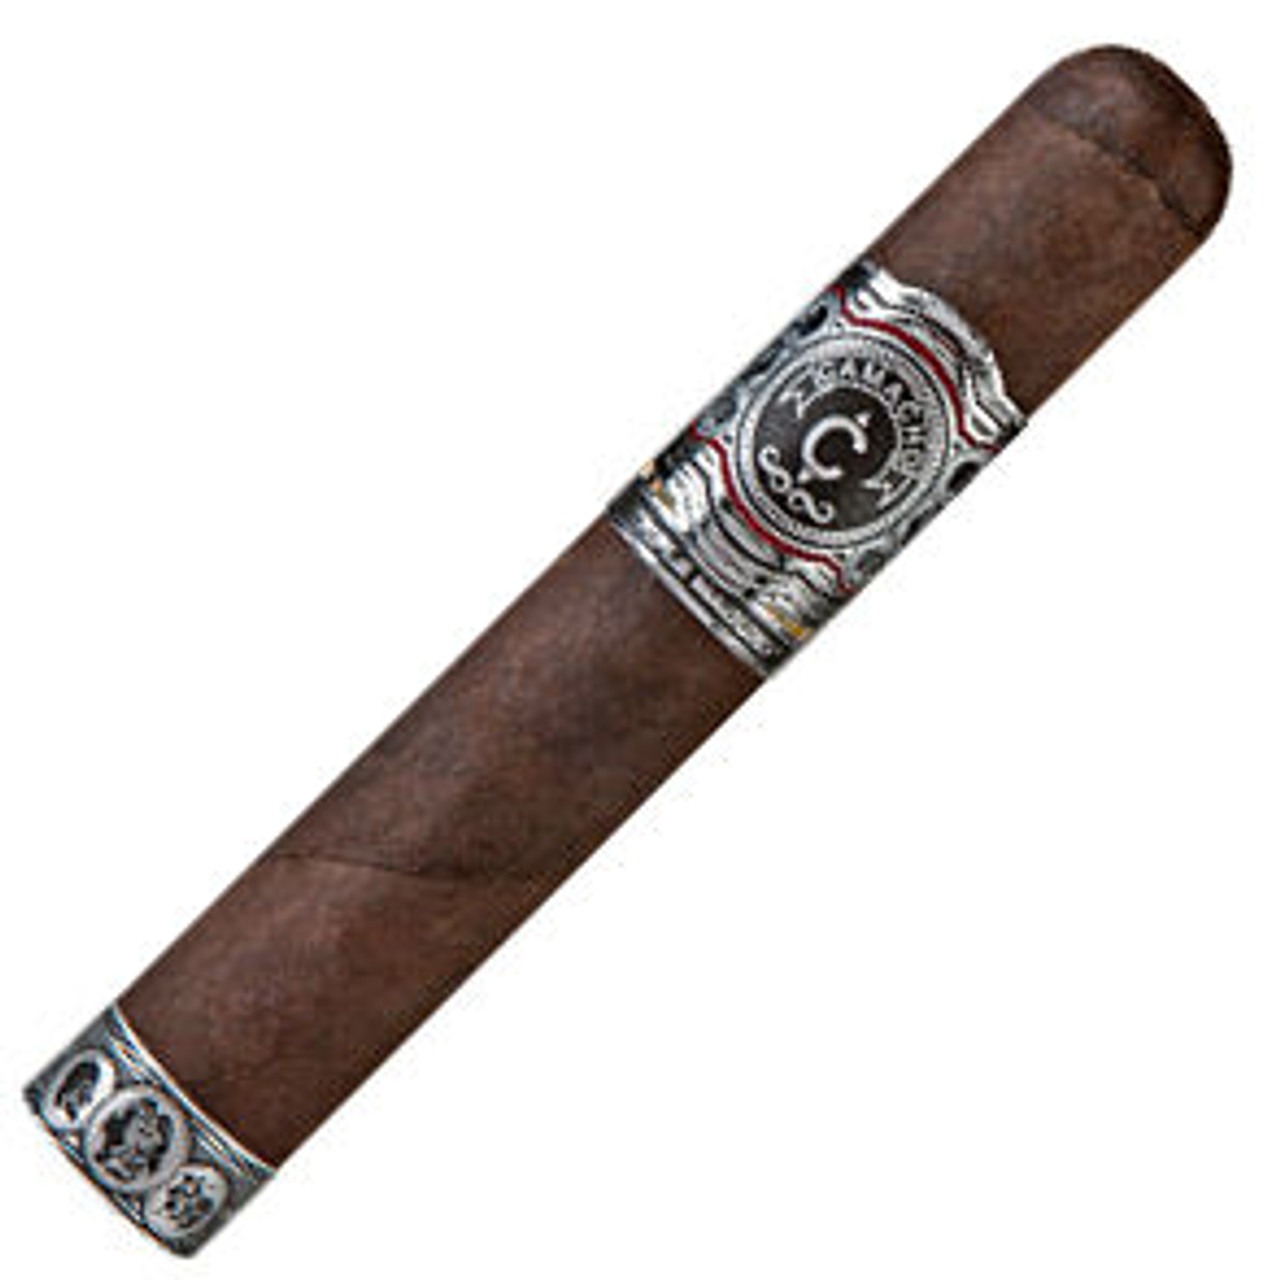 Camacho Triple Maduro Robusto Cigars - 5 x 50 (Pack of 5)